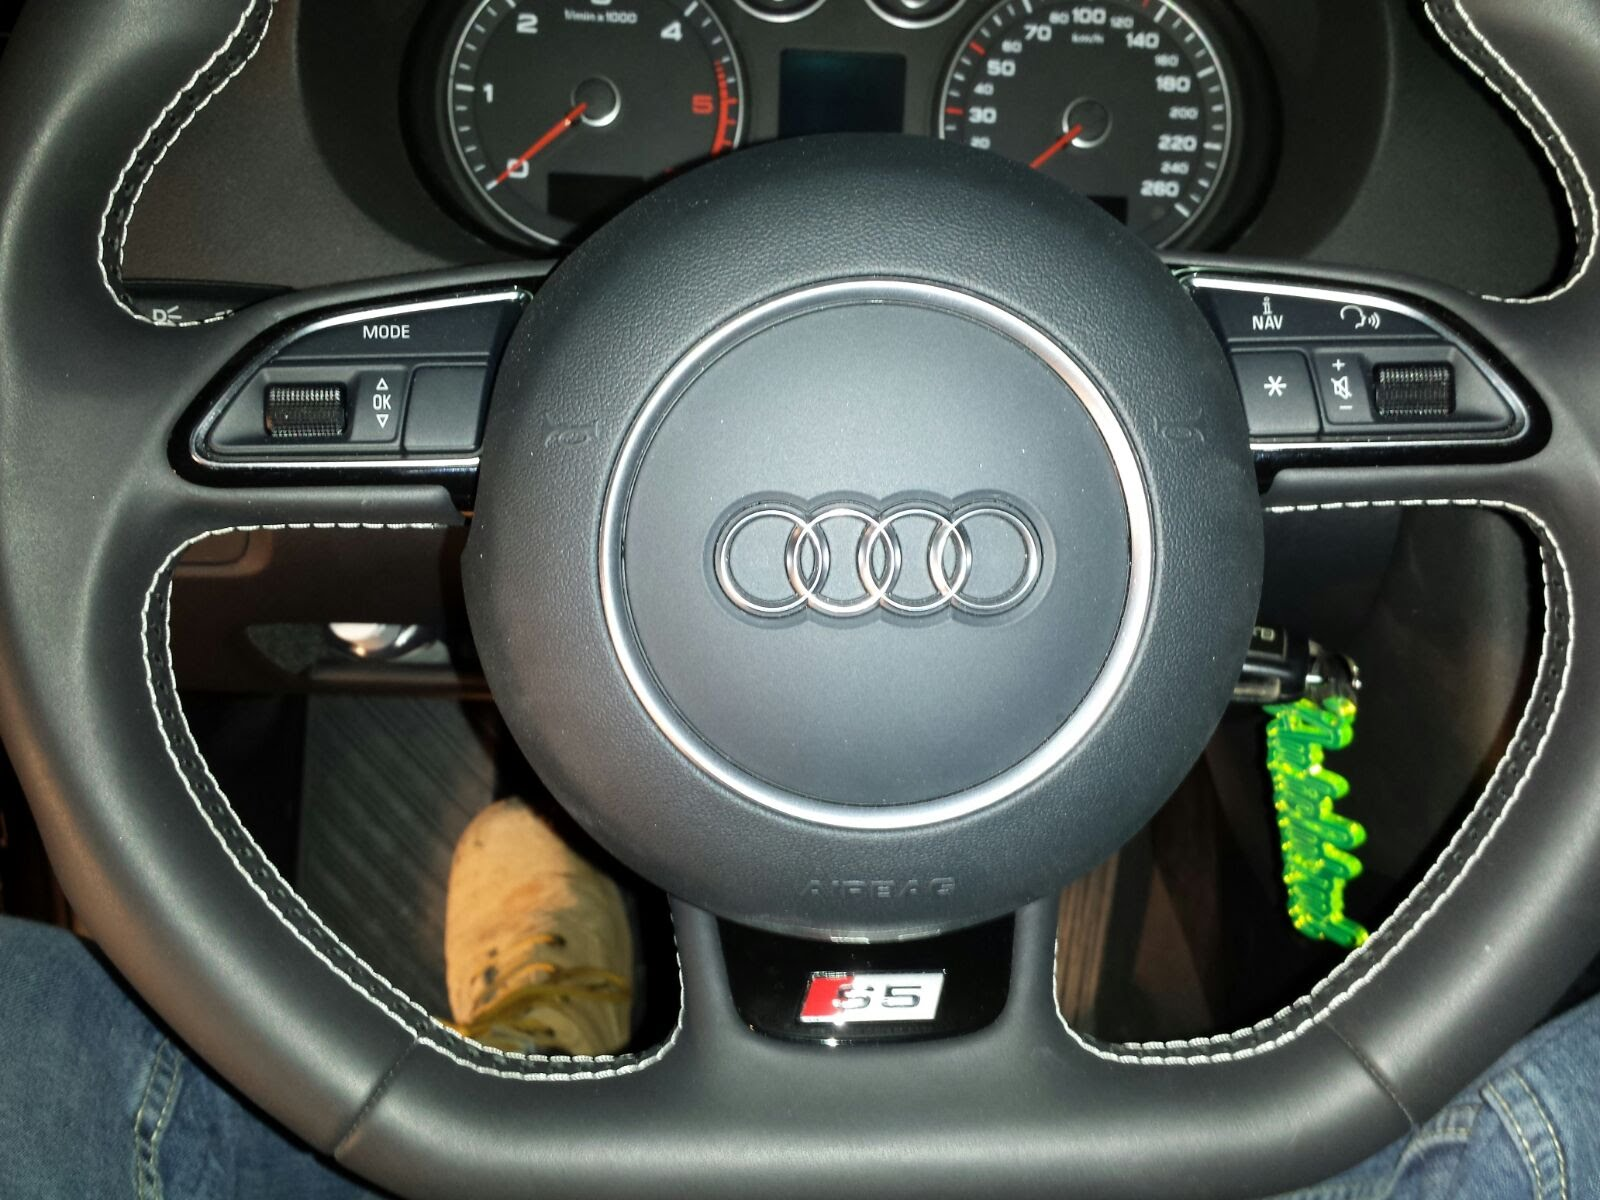 audi a3 cruise control instructions